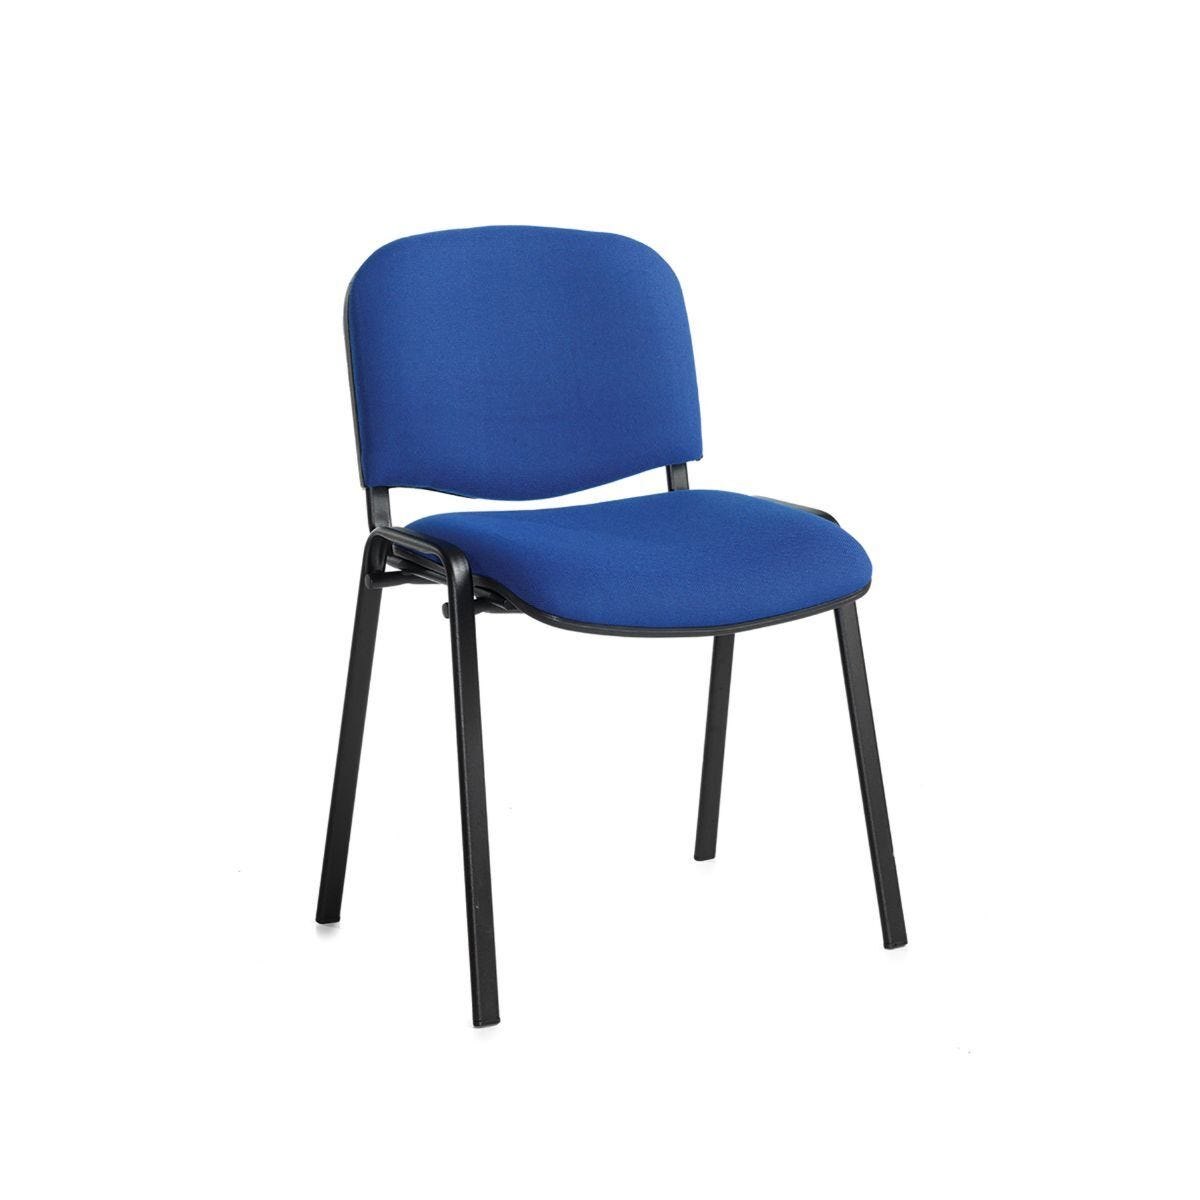 Fabric Stacking Chair Black Frame Blue